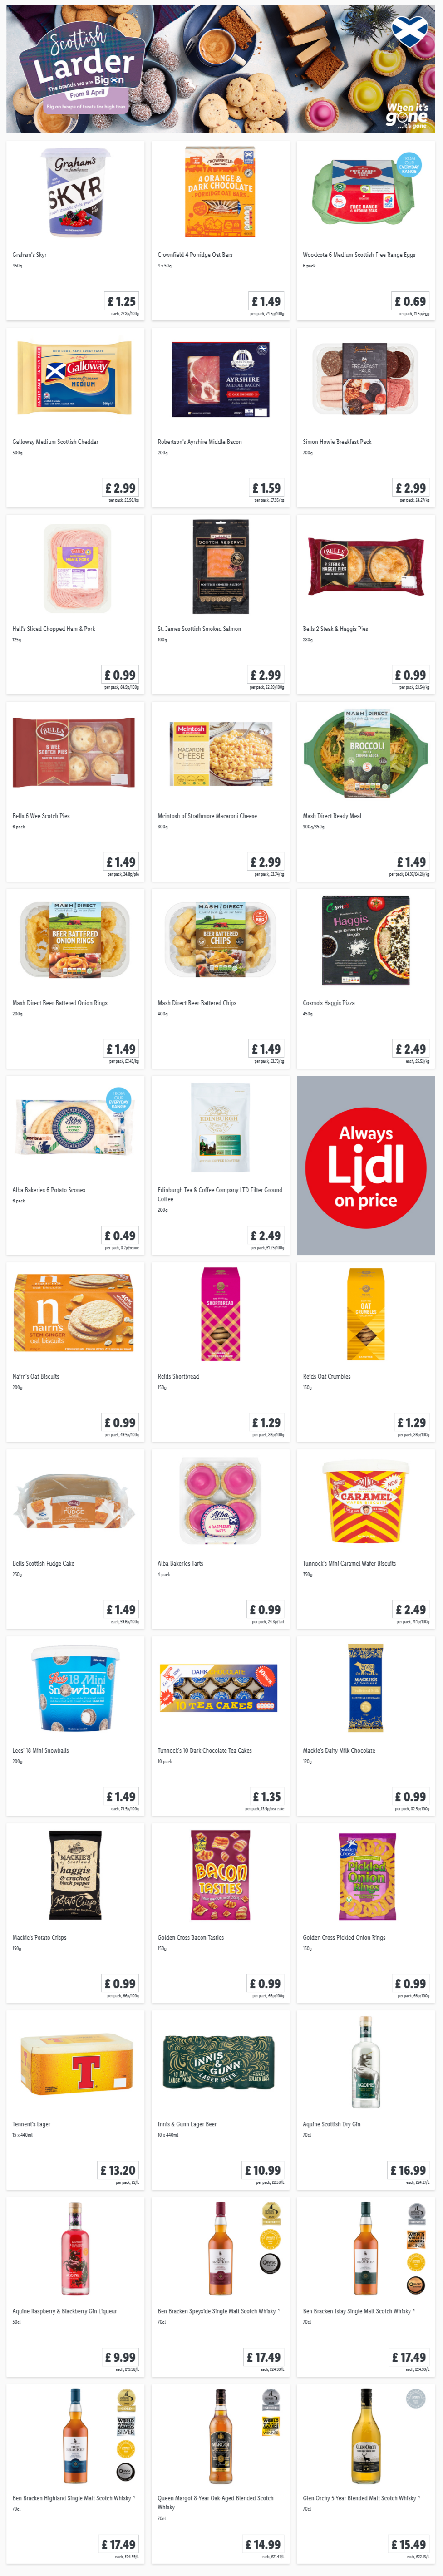 LIDL Offers this Thursday Scottish Larder From 8th April 2021 (Scotland Only)